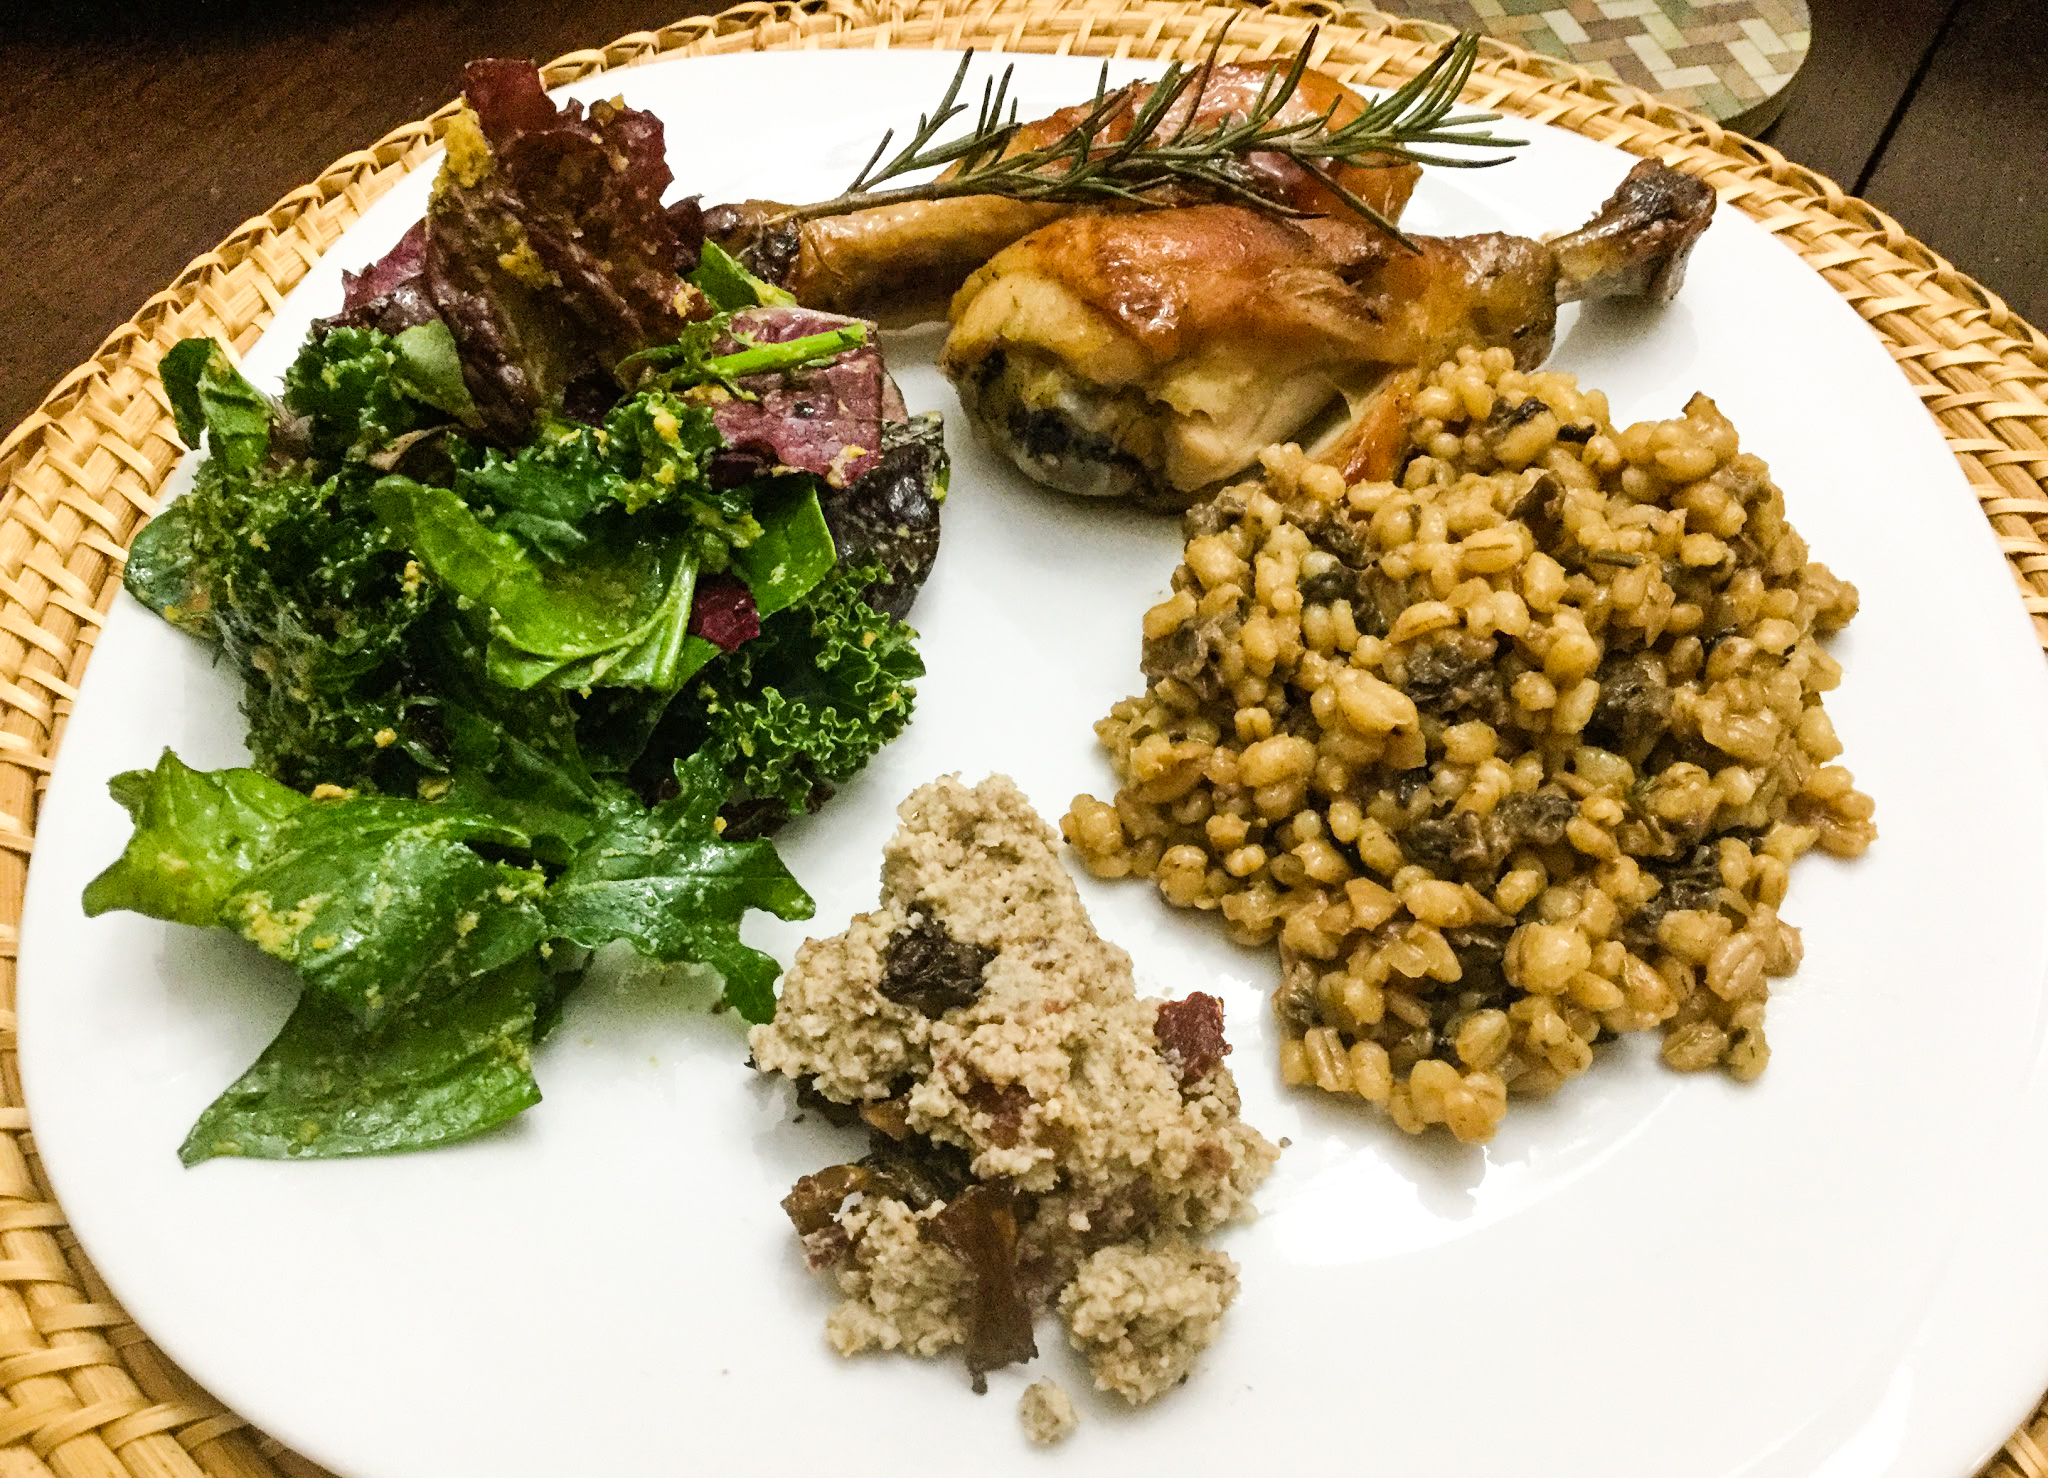 A morel dinner where every dish includes morel mushrooms (including dessert)? Yes please.